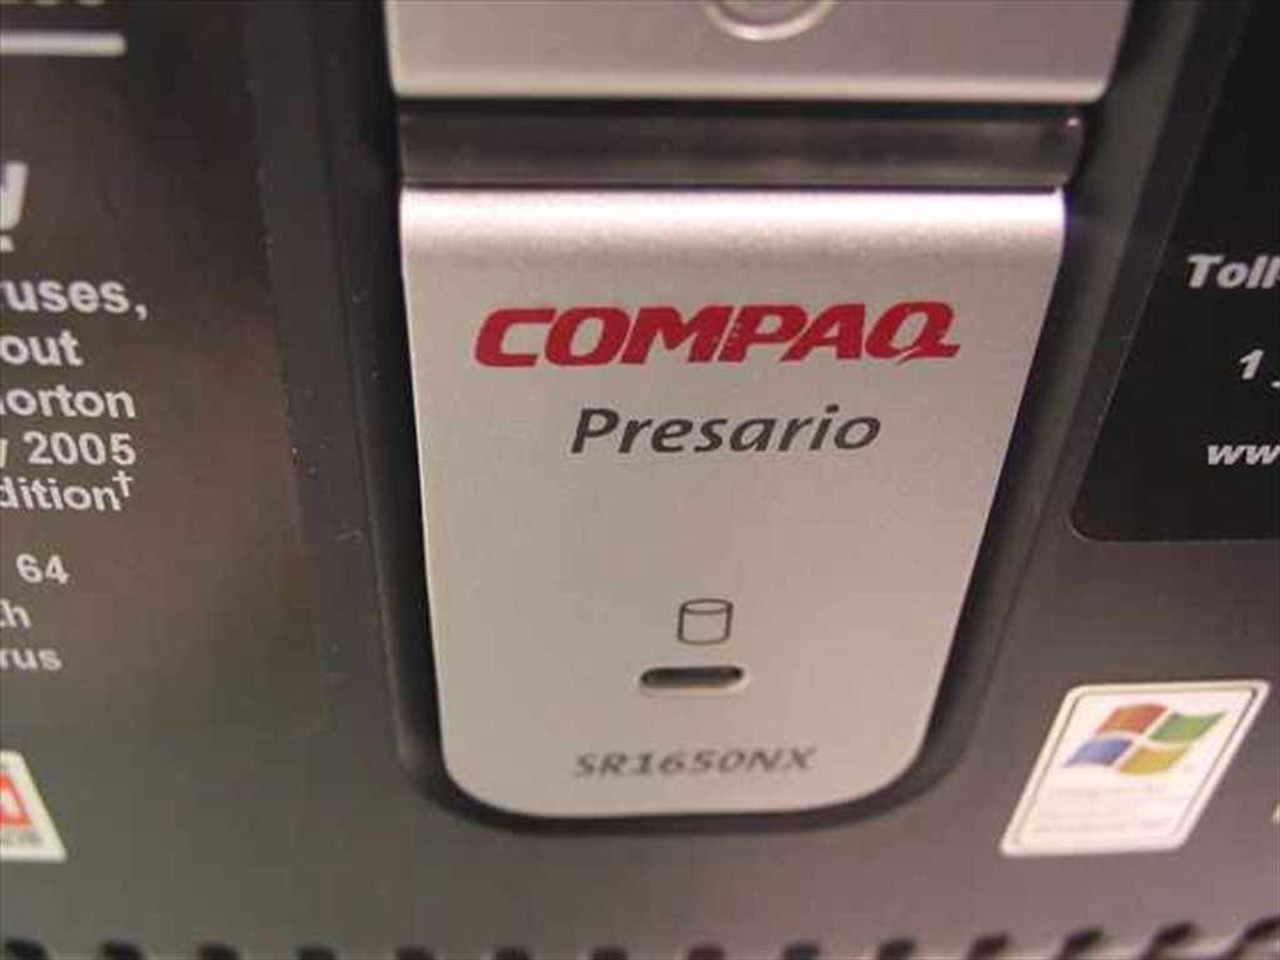 COMPAQ PRESARIO SR1650NX WINDOWS 8.1 DRIVERS DOWNLOAD